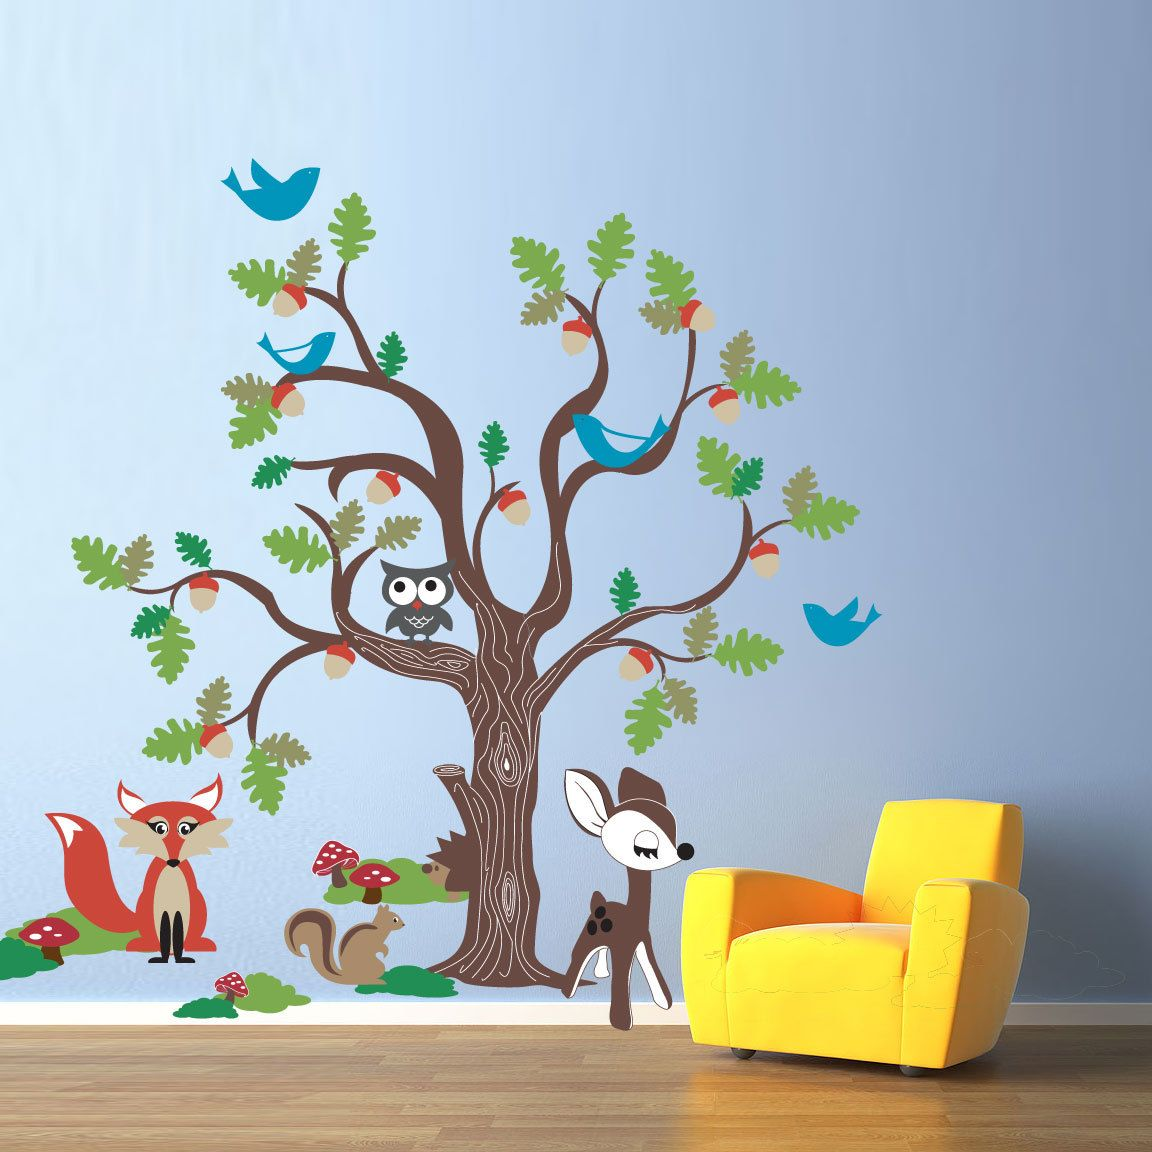 Vinyl wall decal sticker art oak tree and woodland animals room vinyl wall decal amipublicfo Choice Image